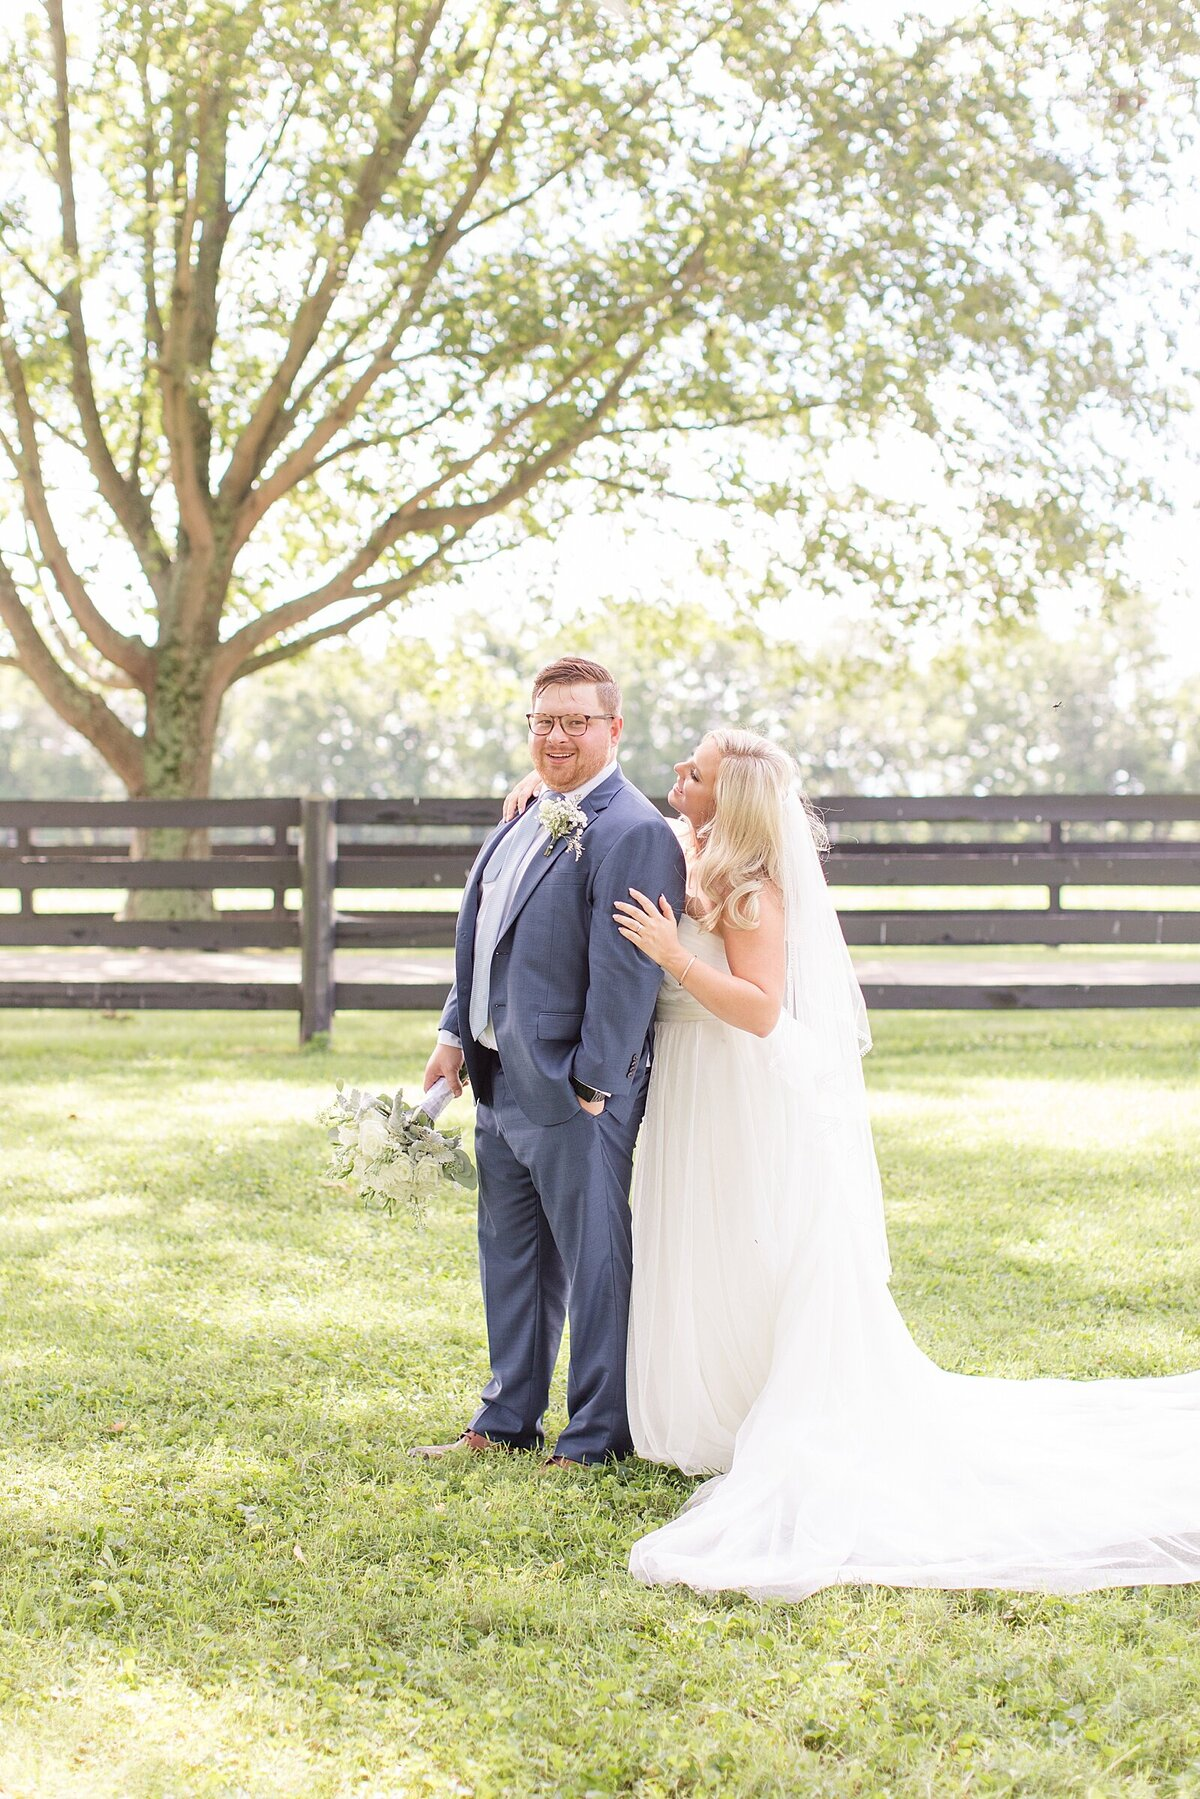 Kara Webster Photography | Mac & Maggie | Bradshaw-Duncan House Louisville, KY Wedding Photographer_0037